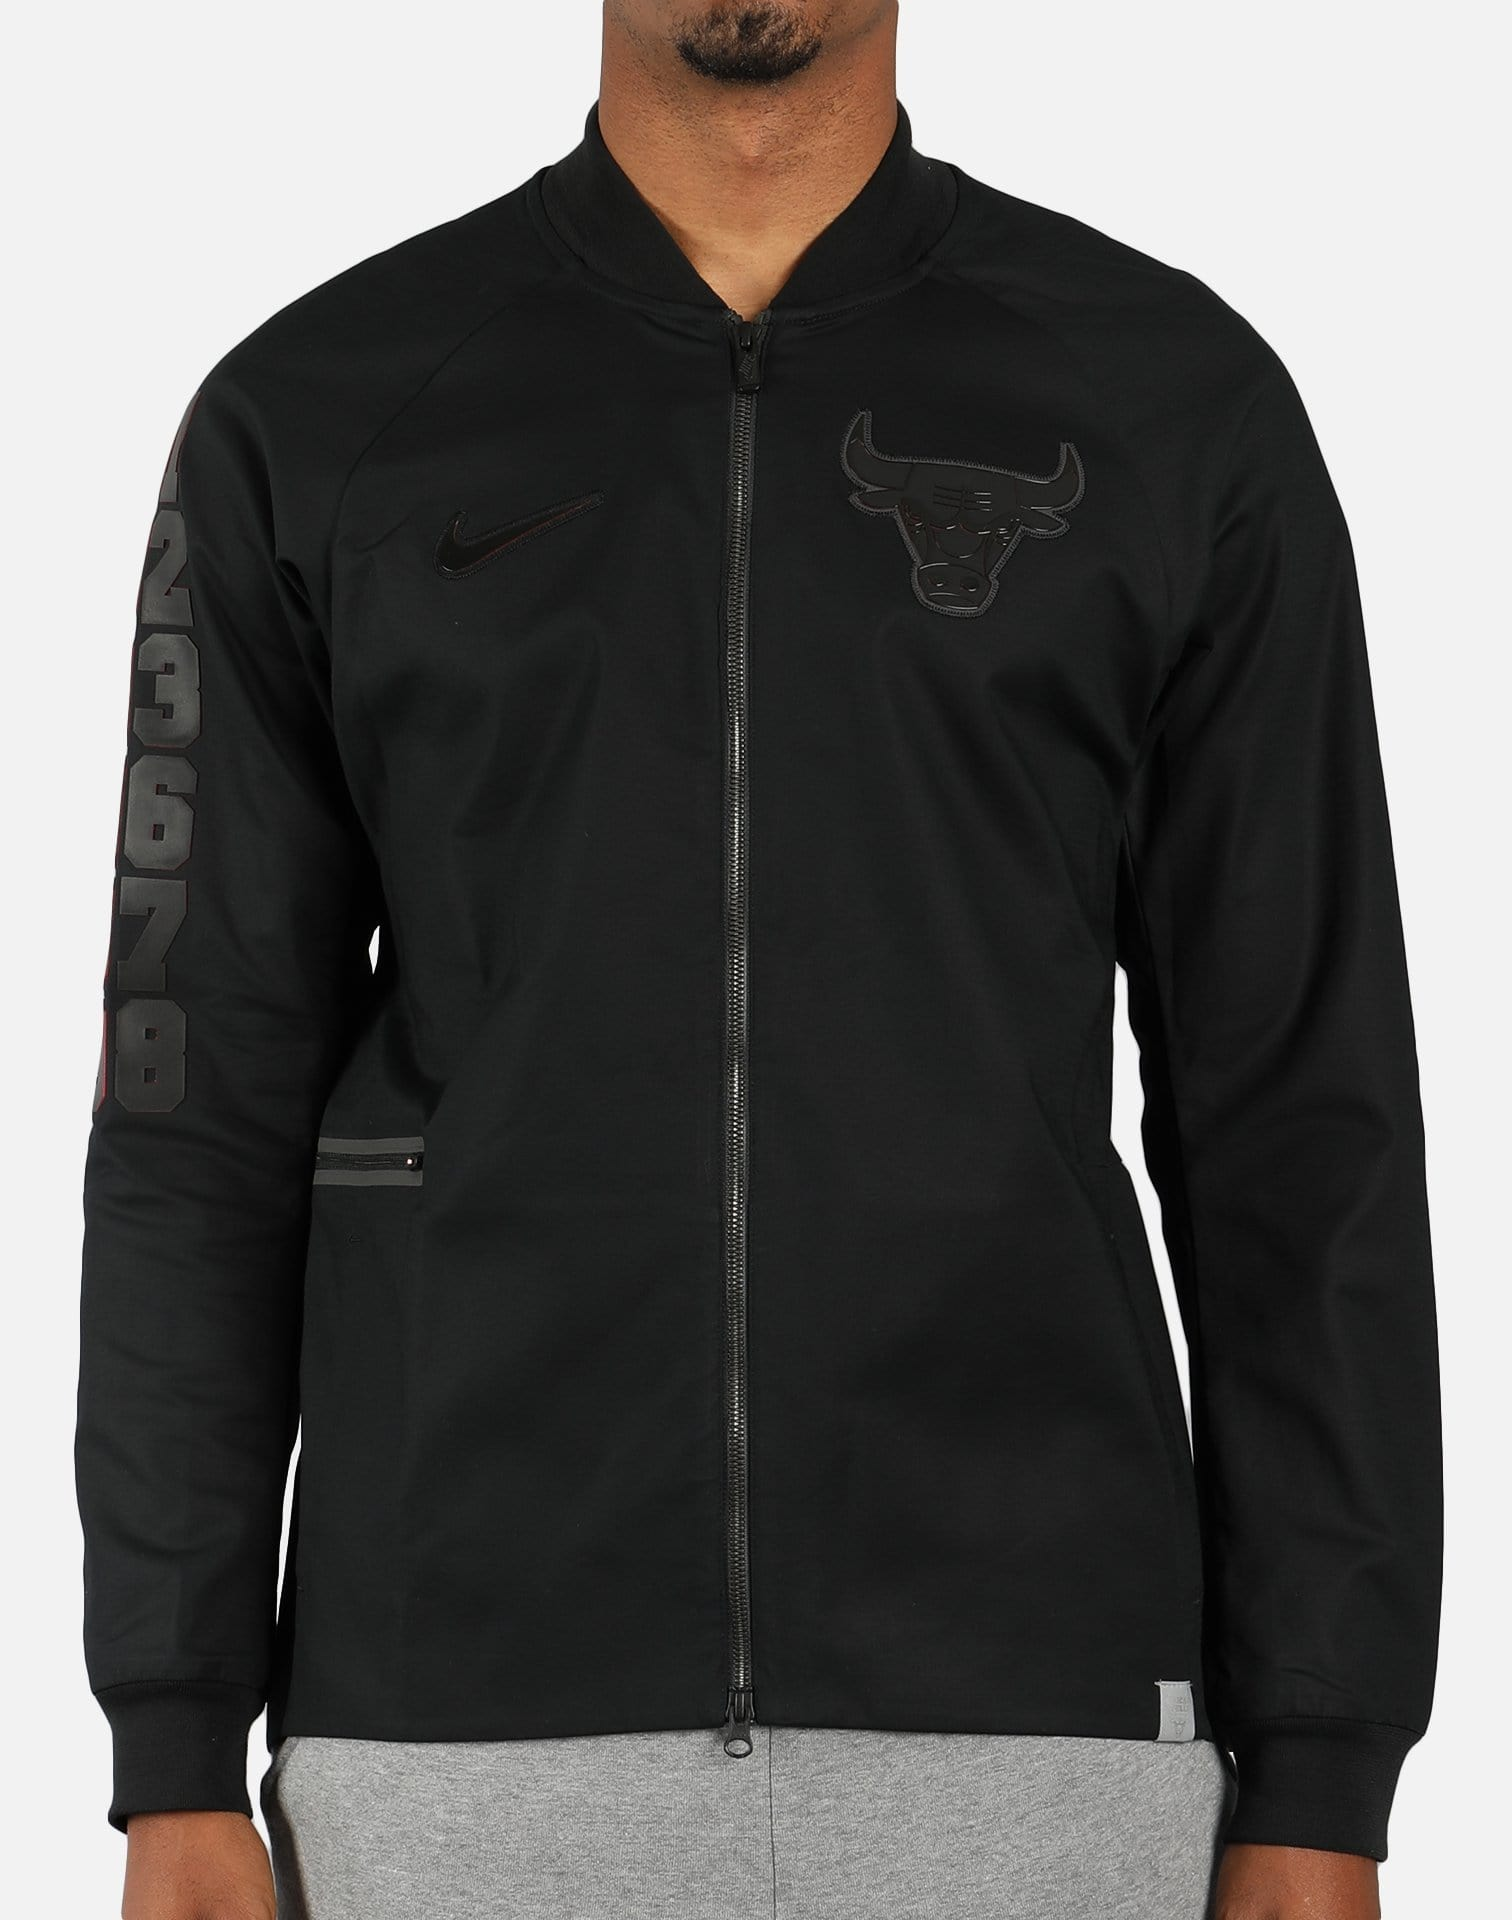 Nike NBA Chicago Bulls Modern Varsity Jacket (Black)